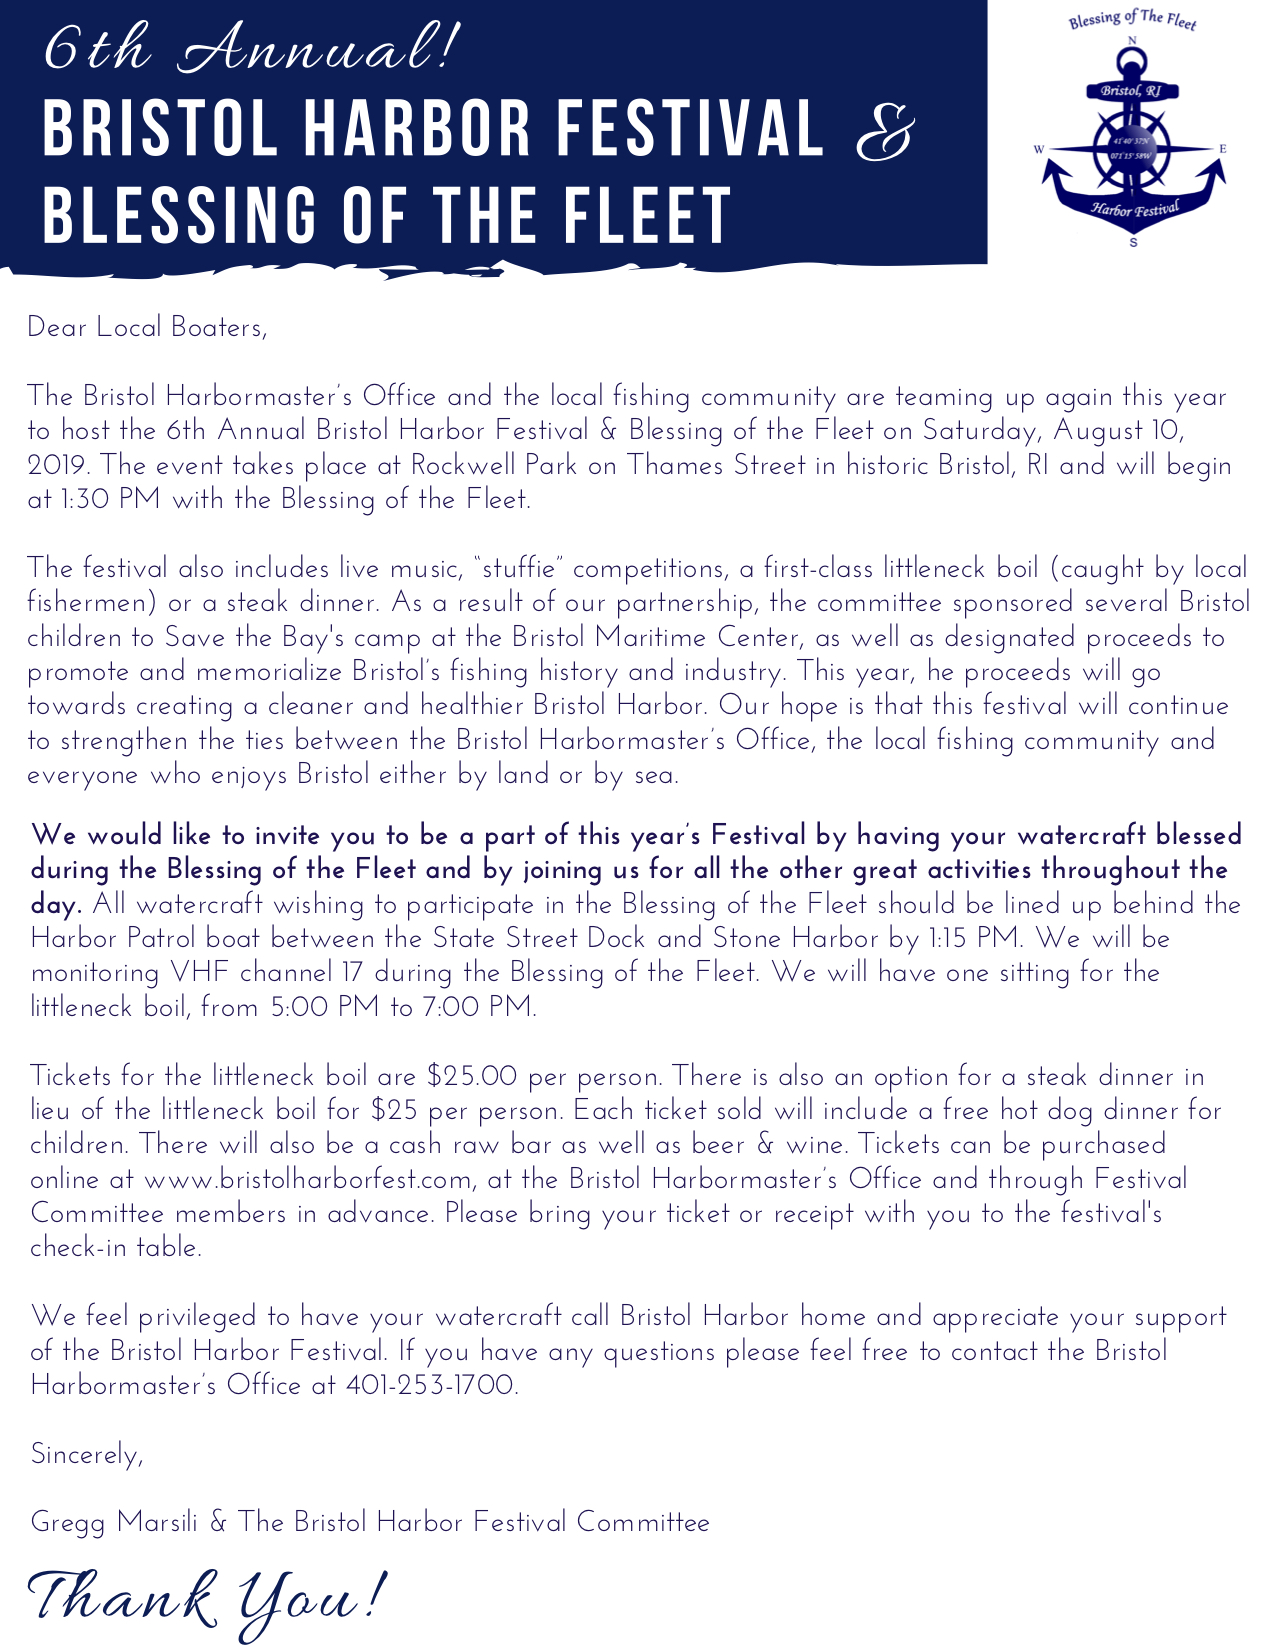 Bristol Harbor Festival Letter to Local Boaters